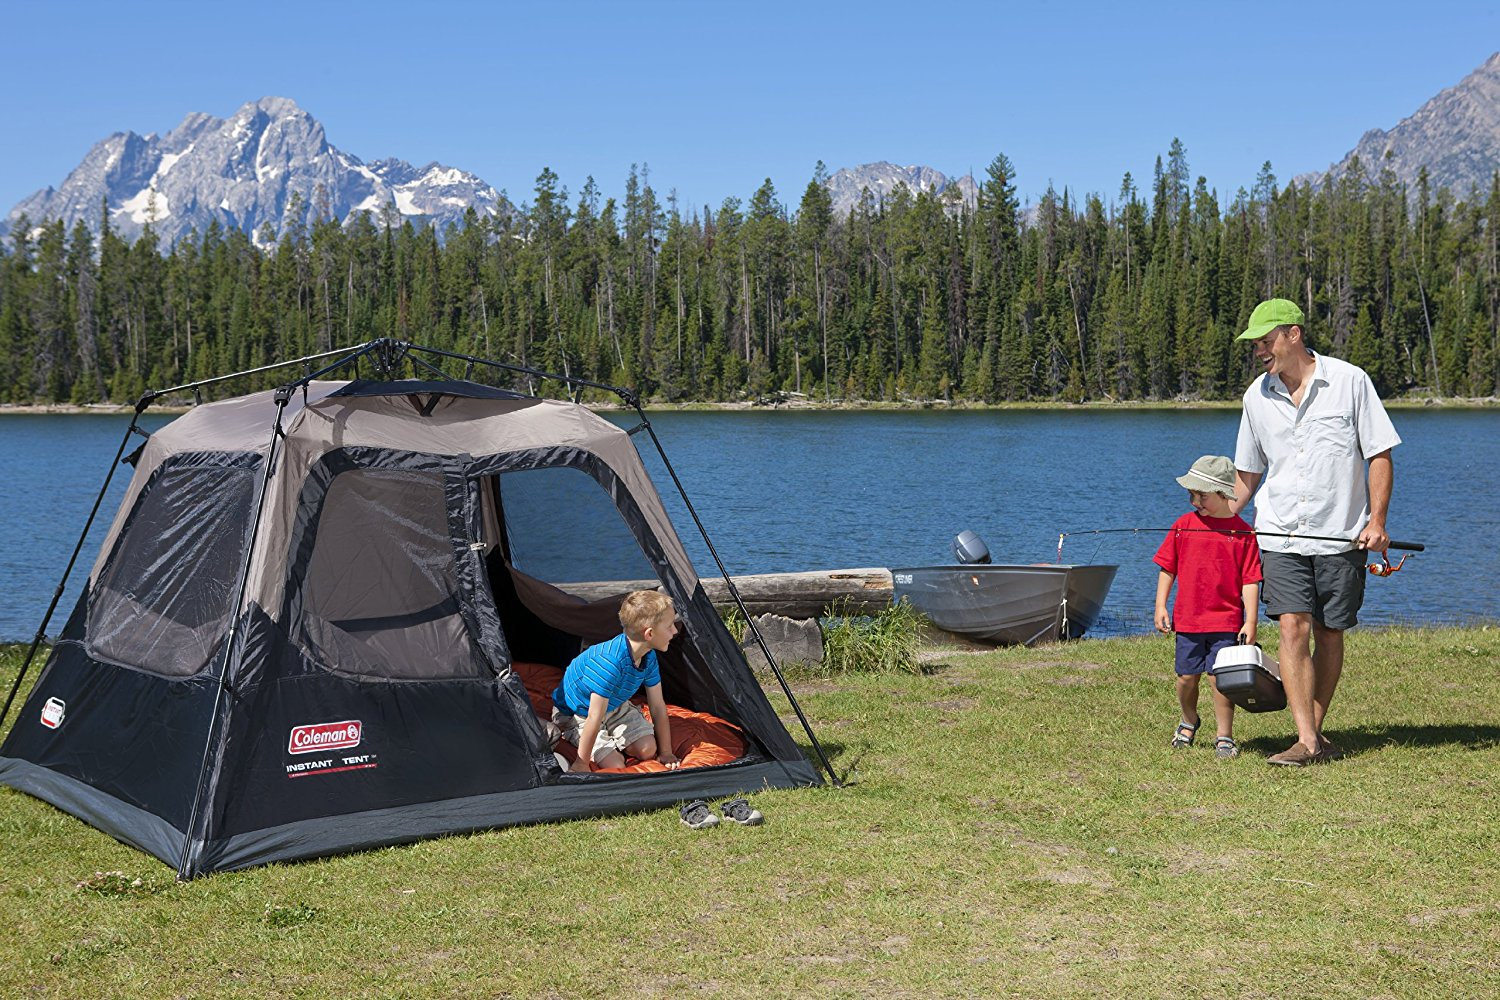 & Top 5 Best Coleman Tent Reviews of 2018 - TheOdGeeks